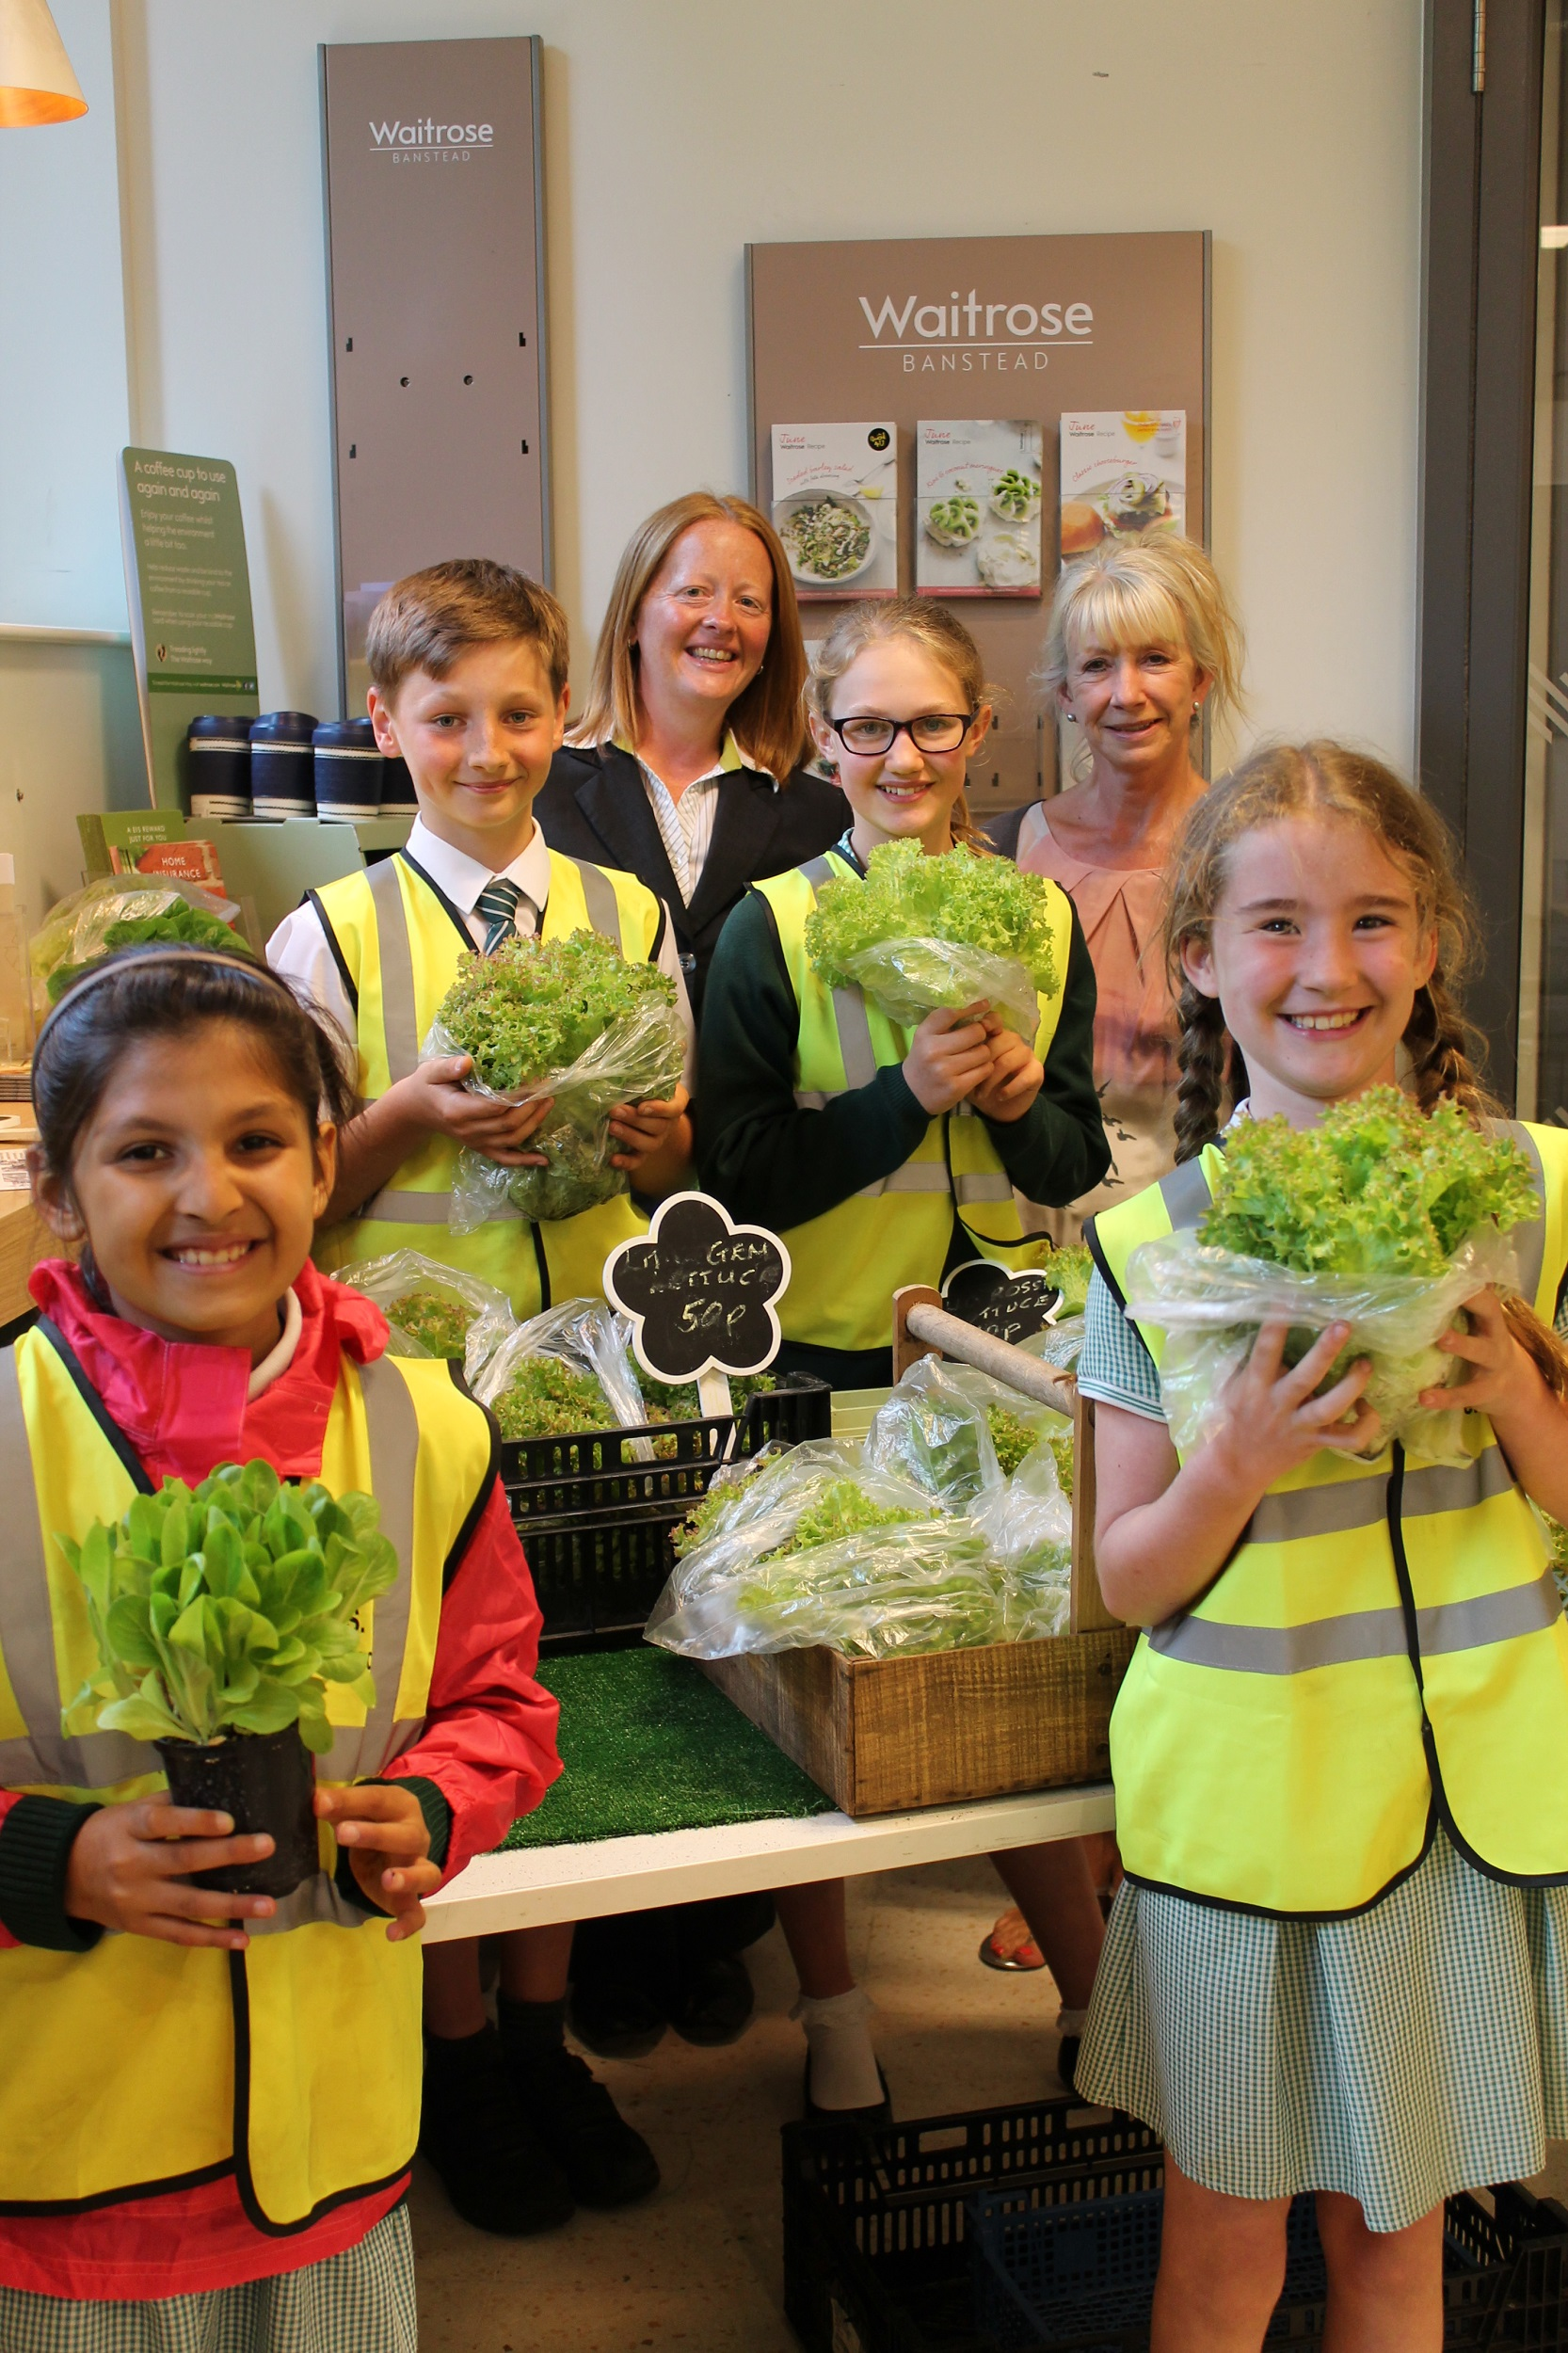 Bcjs waitrose sow and sell project comes to fruition epsom guardian izmirmasajfo